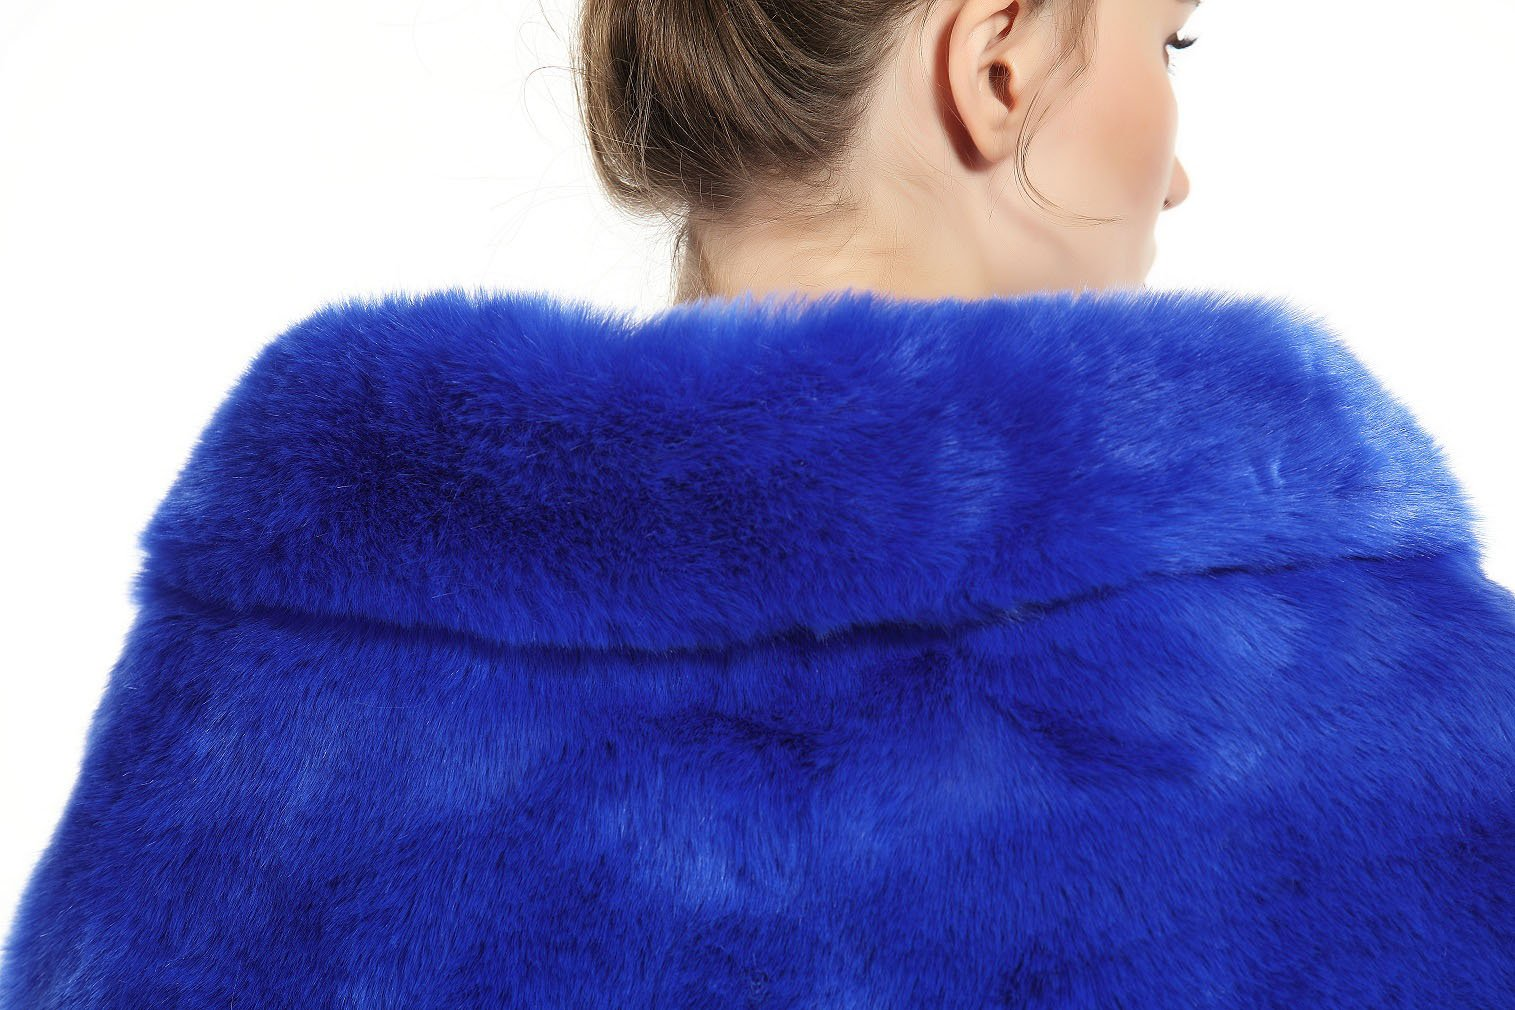 Faux Fur Shawl Wrap Stole Shrug Winter Bridal Wedding Cover Up Royal Blue Size M by MISSYDRESS (Image #5)